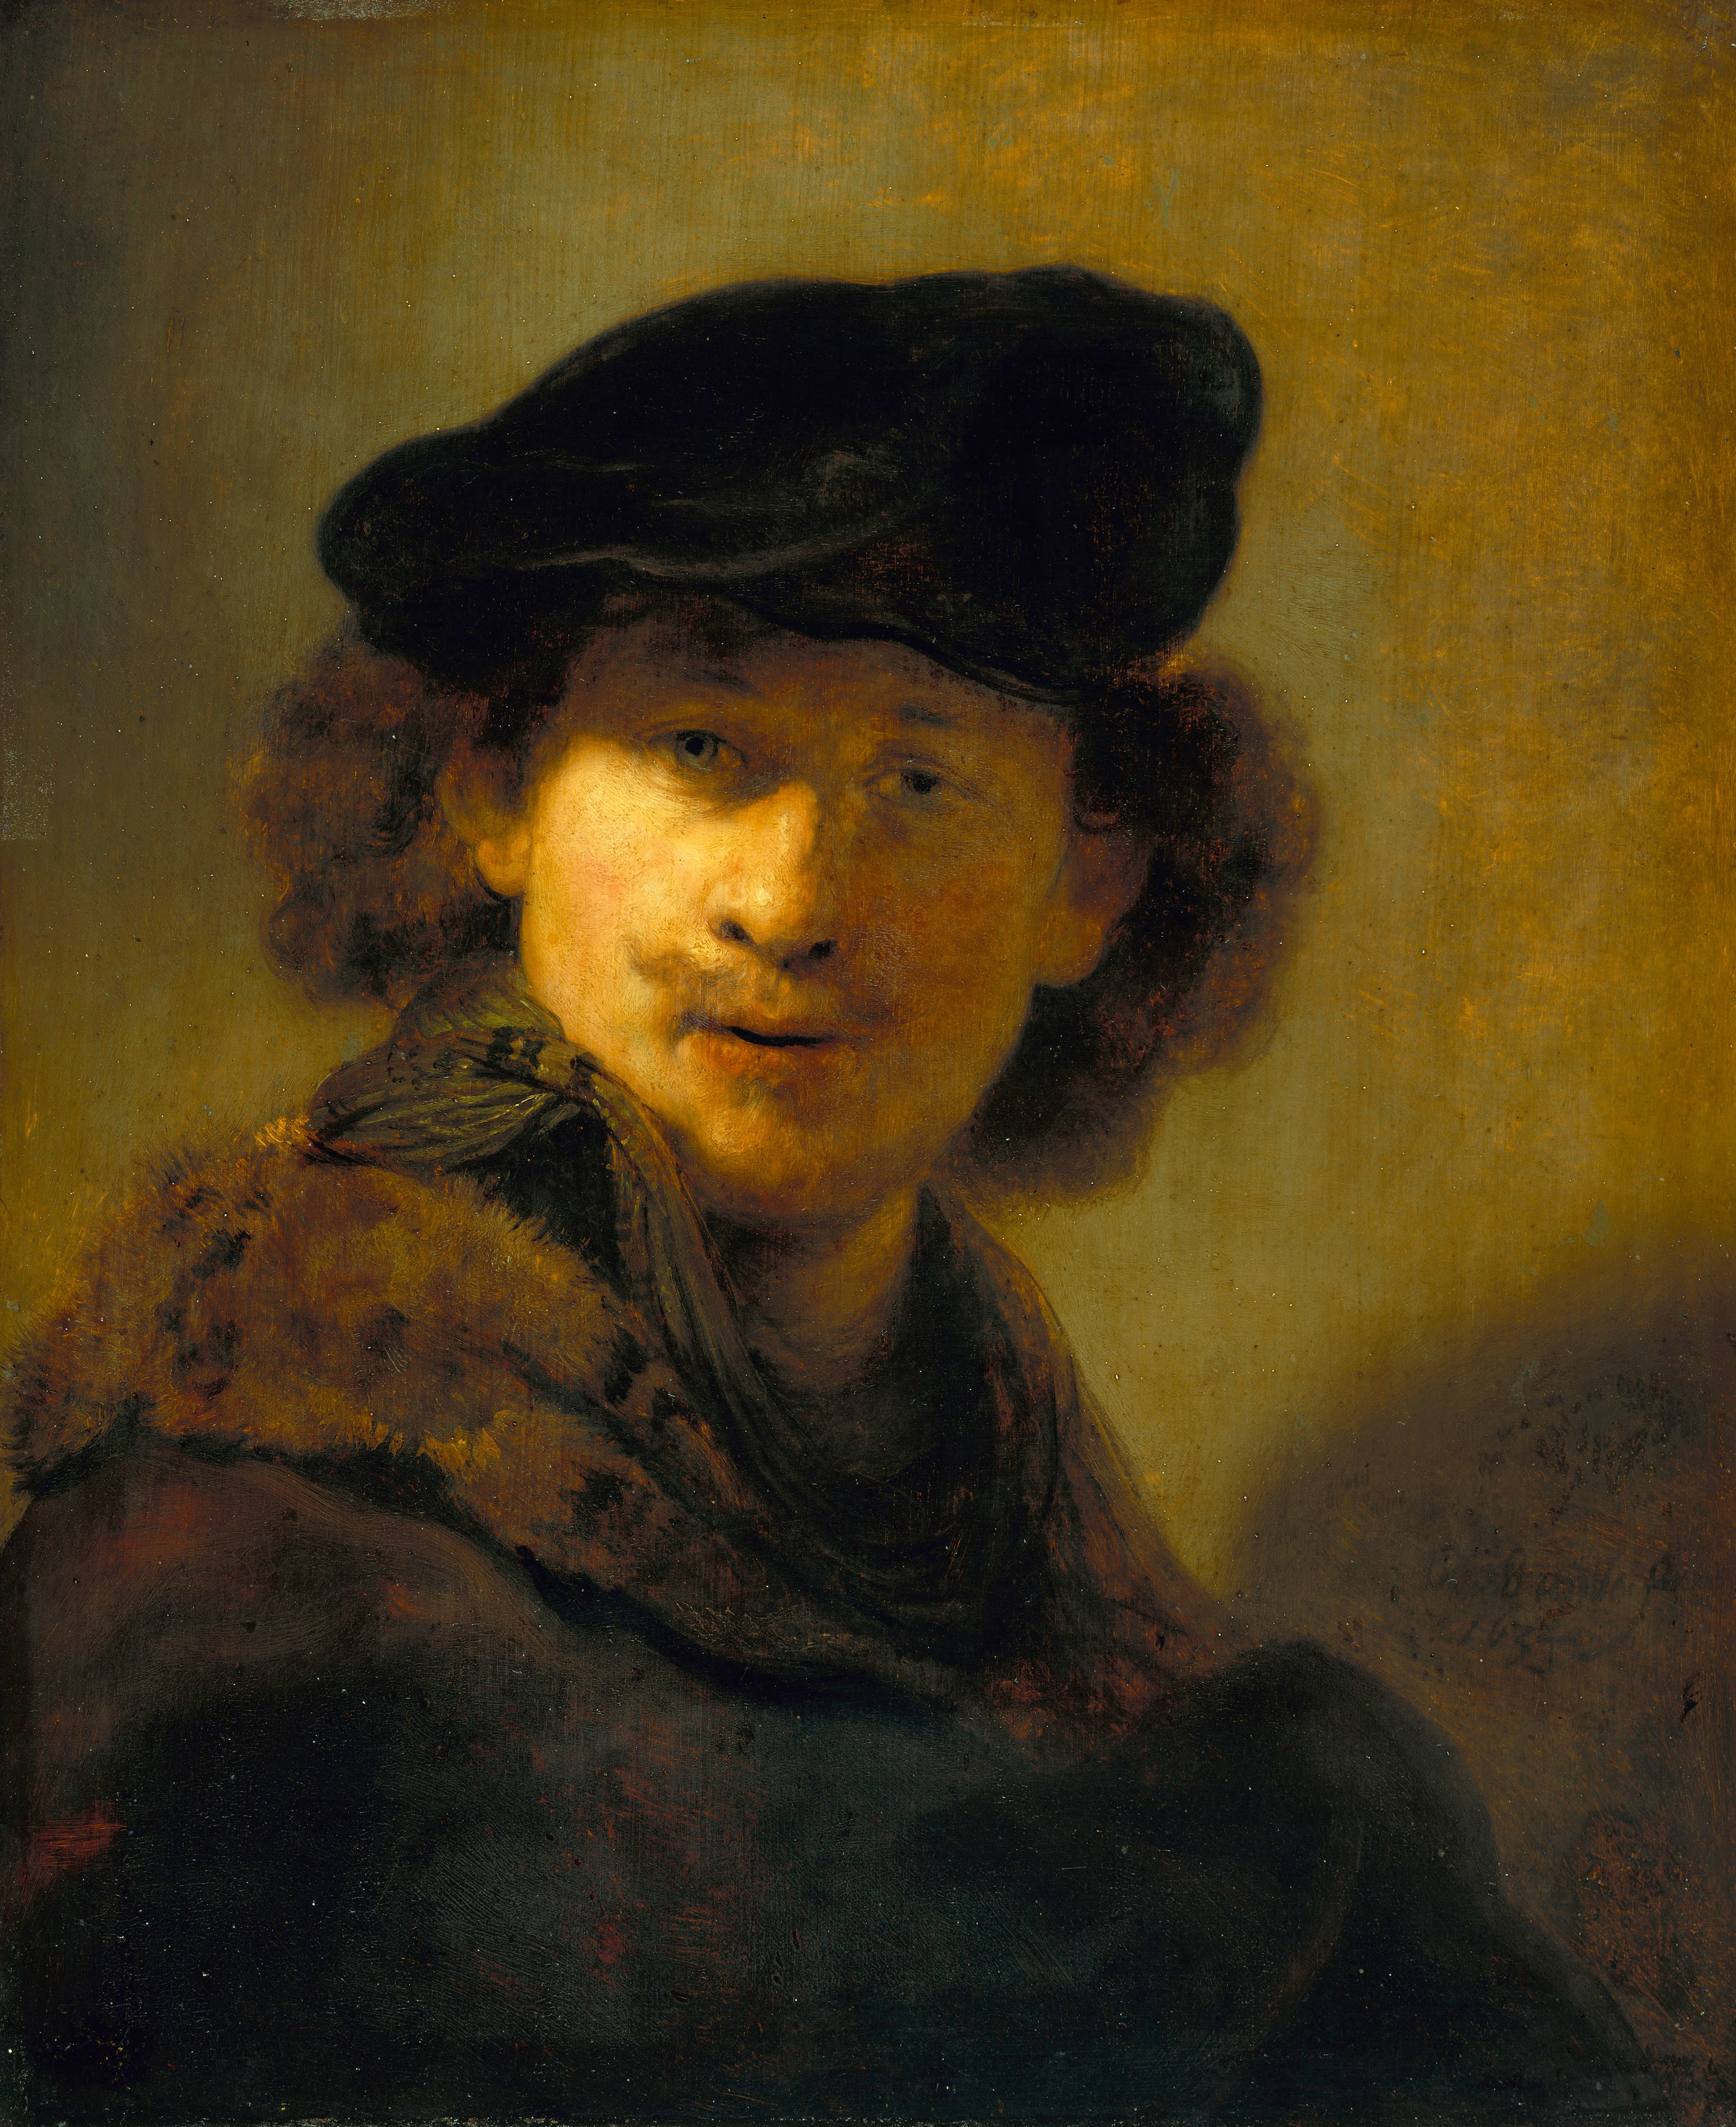 File rembrandt self portrait with velvet beret google art project